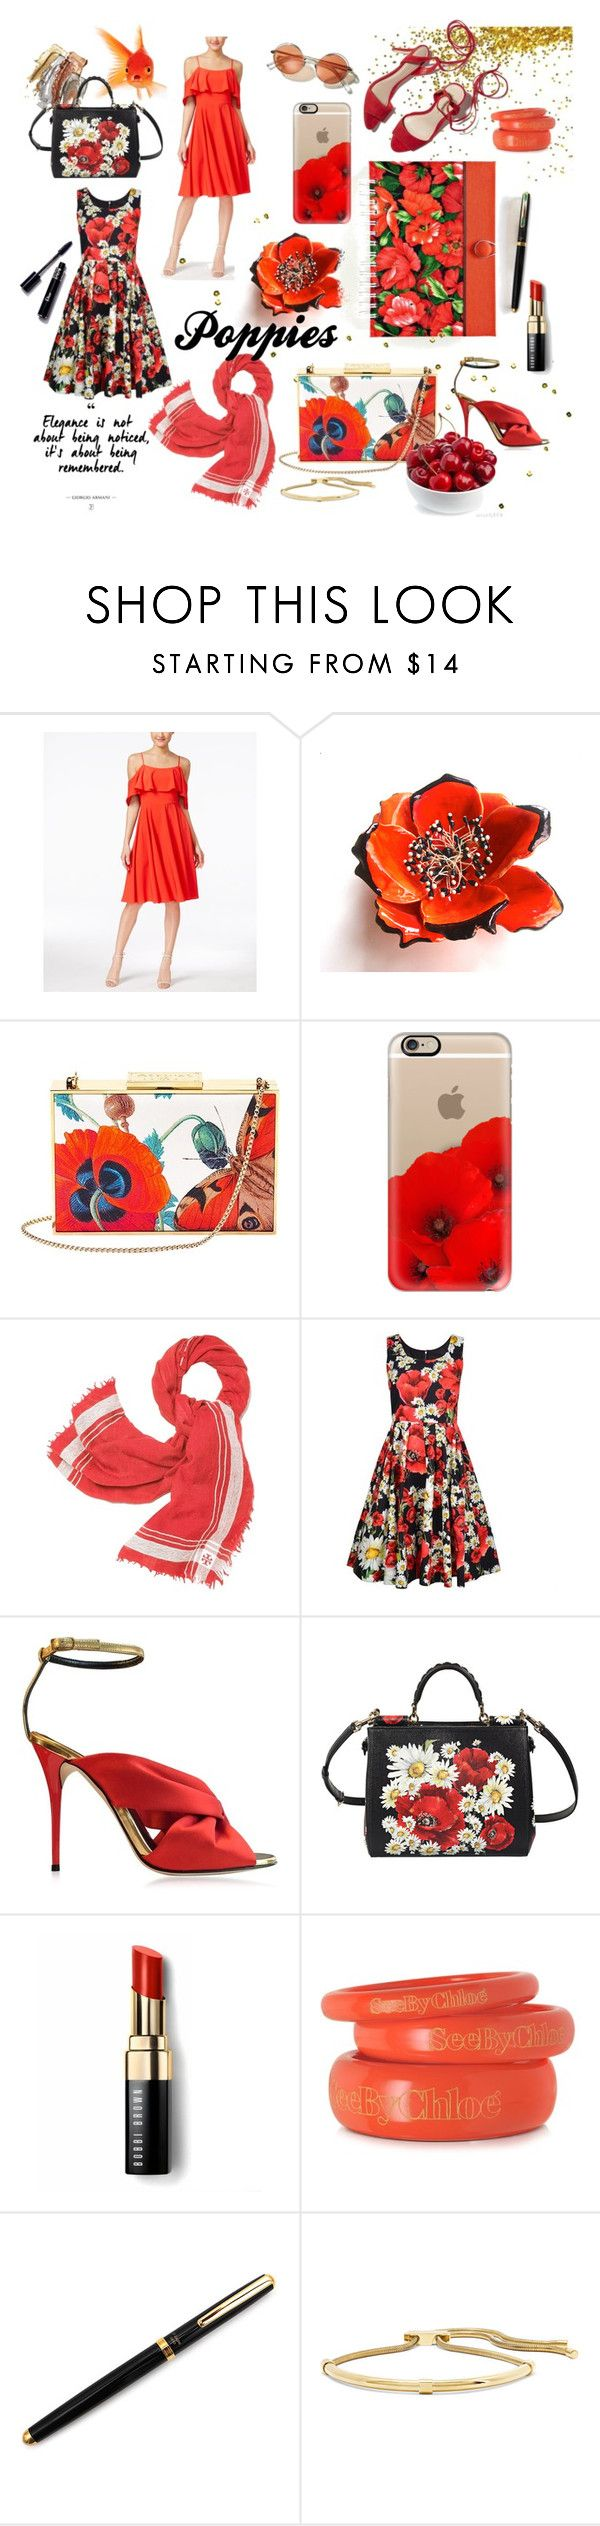 """""""Poppies!!"""" by iwona-estera on Polyvore featuring CeCe, Aspinal of London, Casetify, Tory Burch, Loeffler Randall, Dolce&Gabbana, Oscar de la Renta, Bobbi Brown Cosmetics, See by Chloé and Lanvin"""